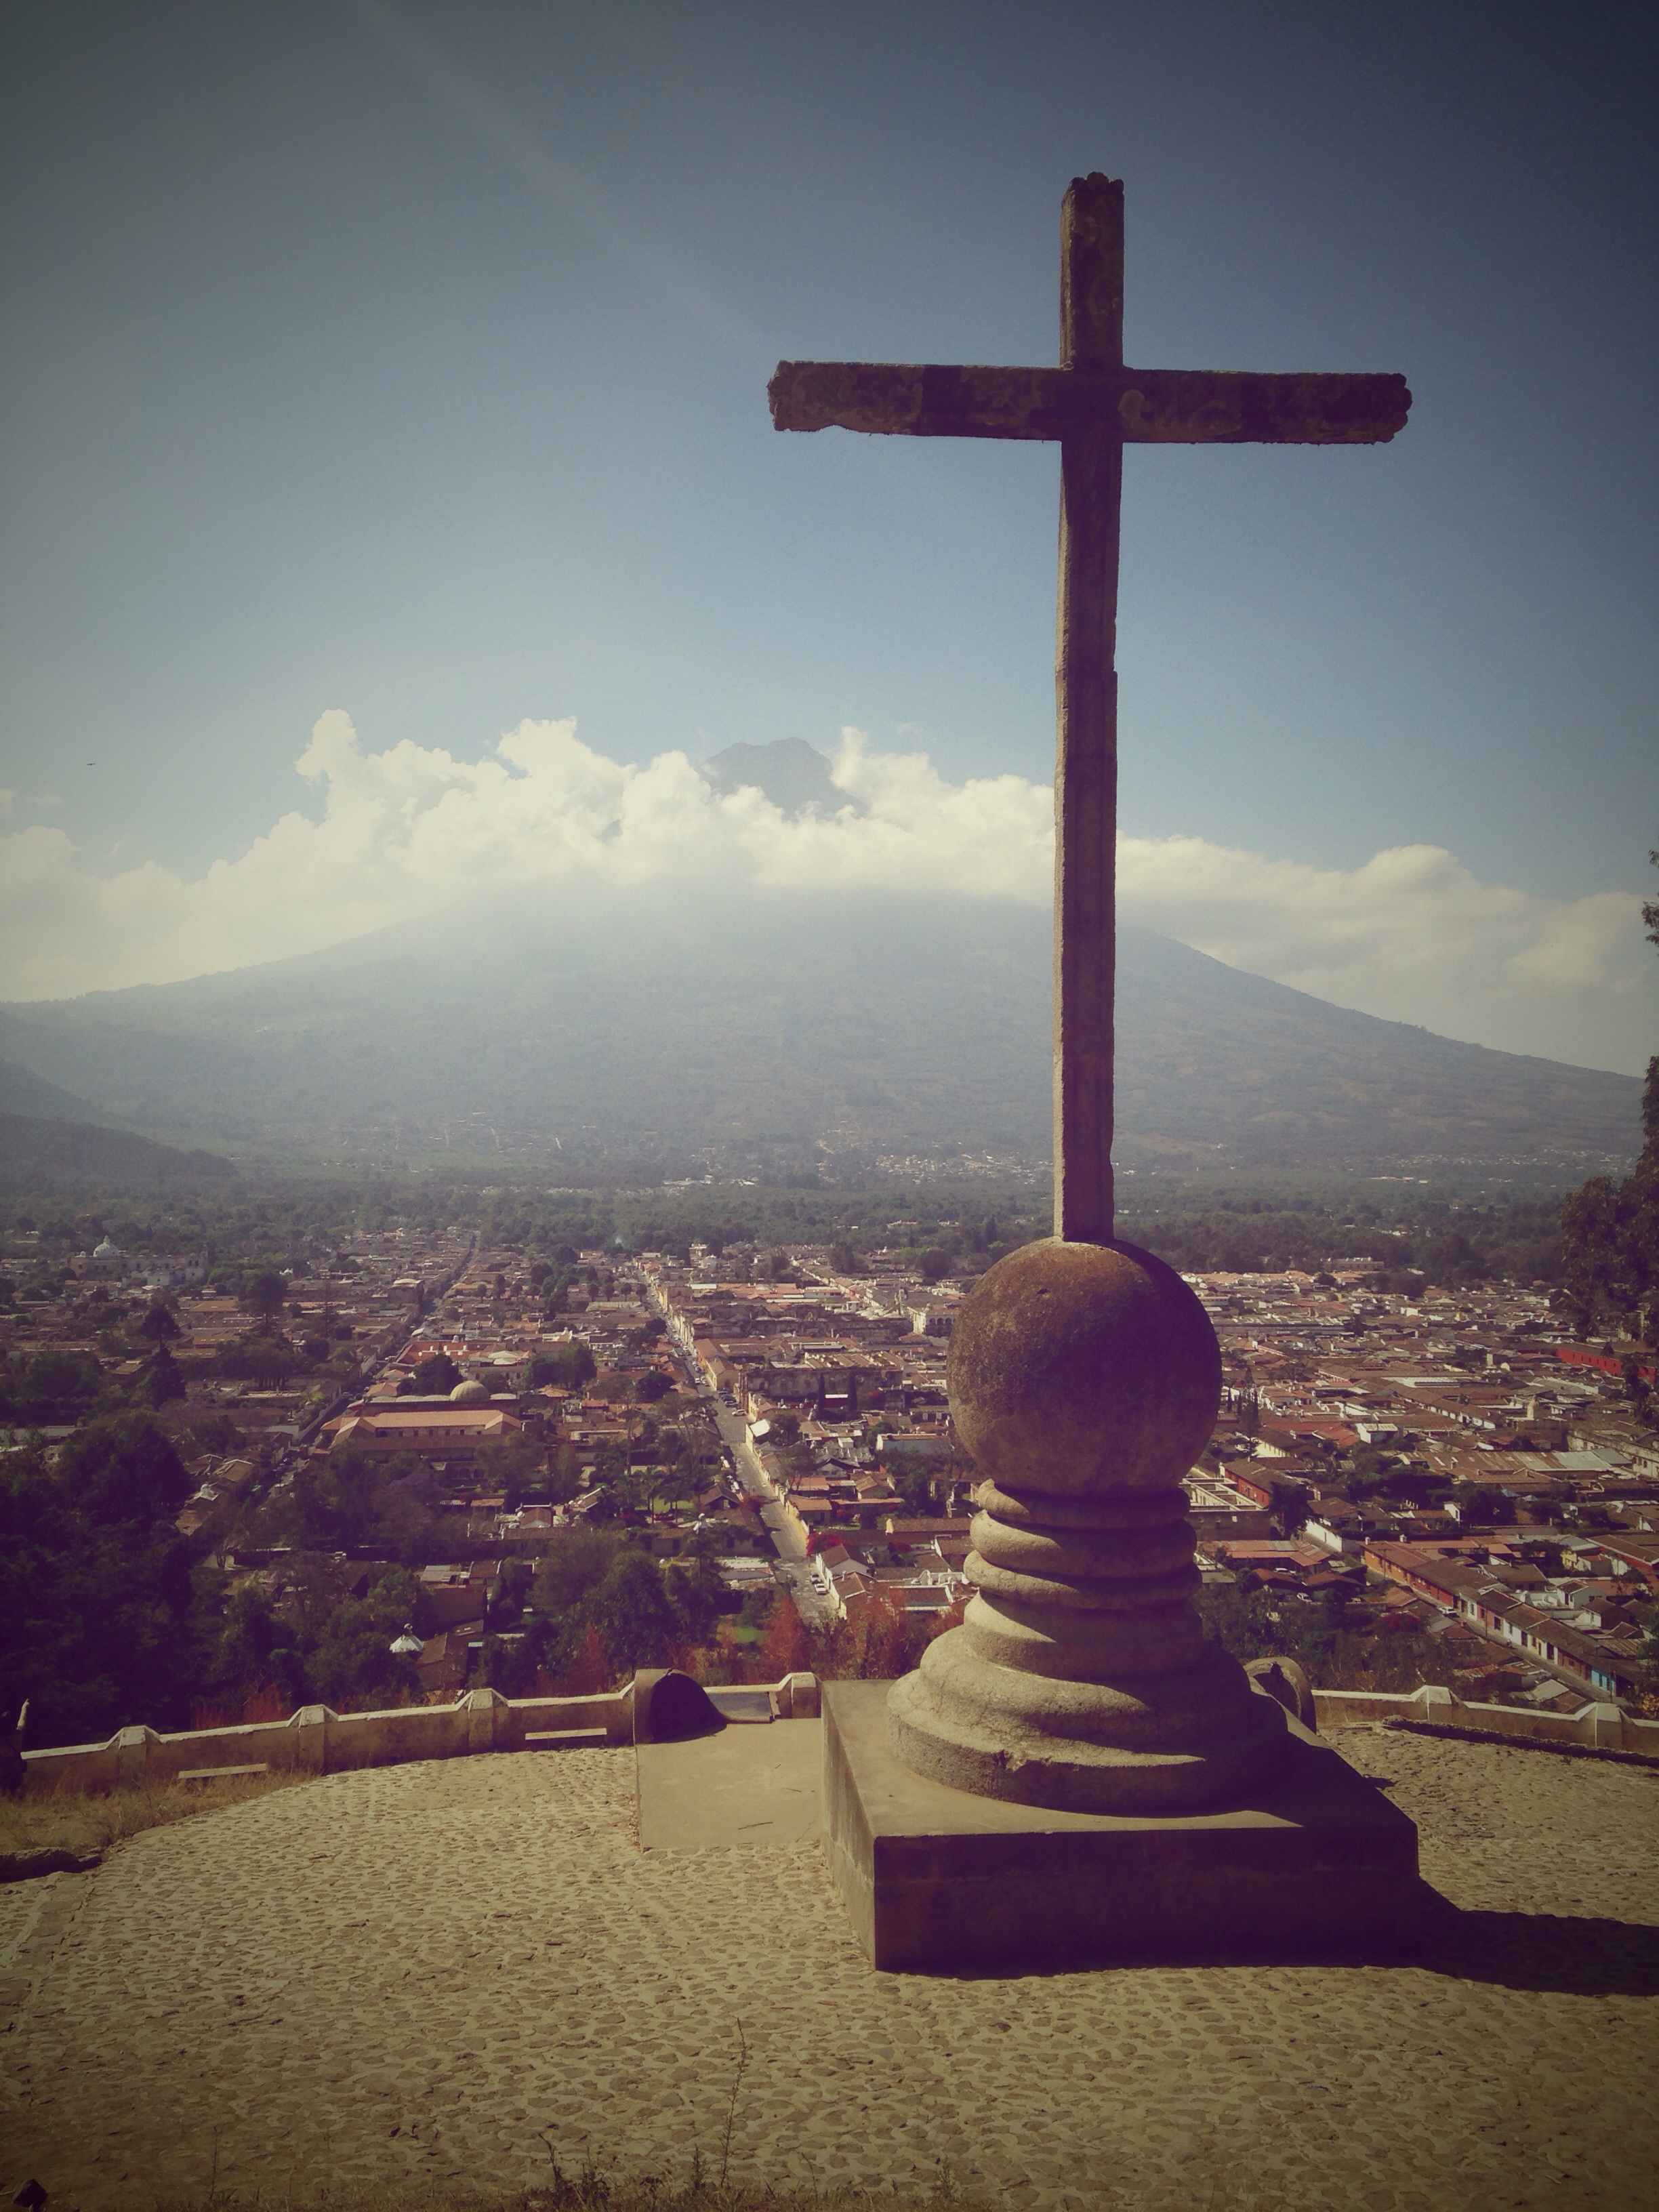 This is the cross that over looks the city of Antigua, Guatemala. Beautiful view.